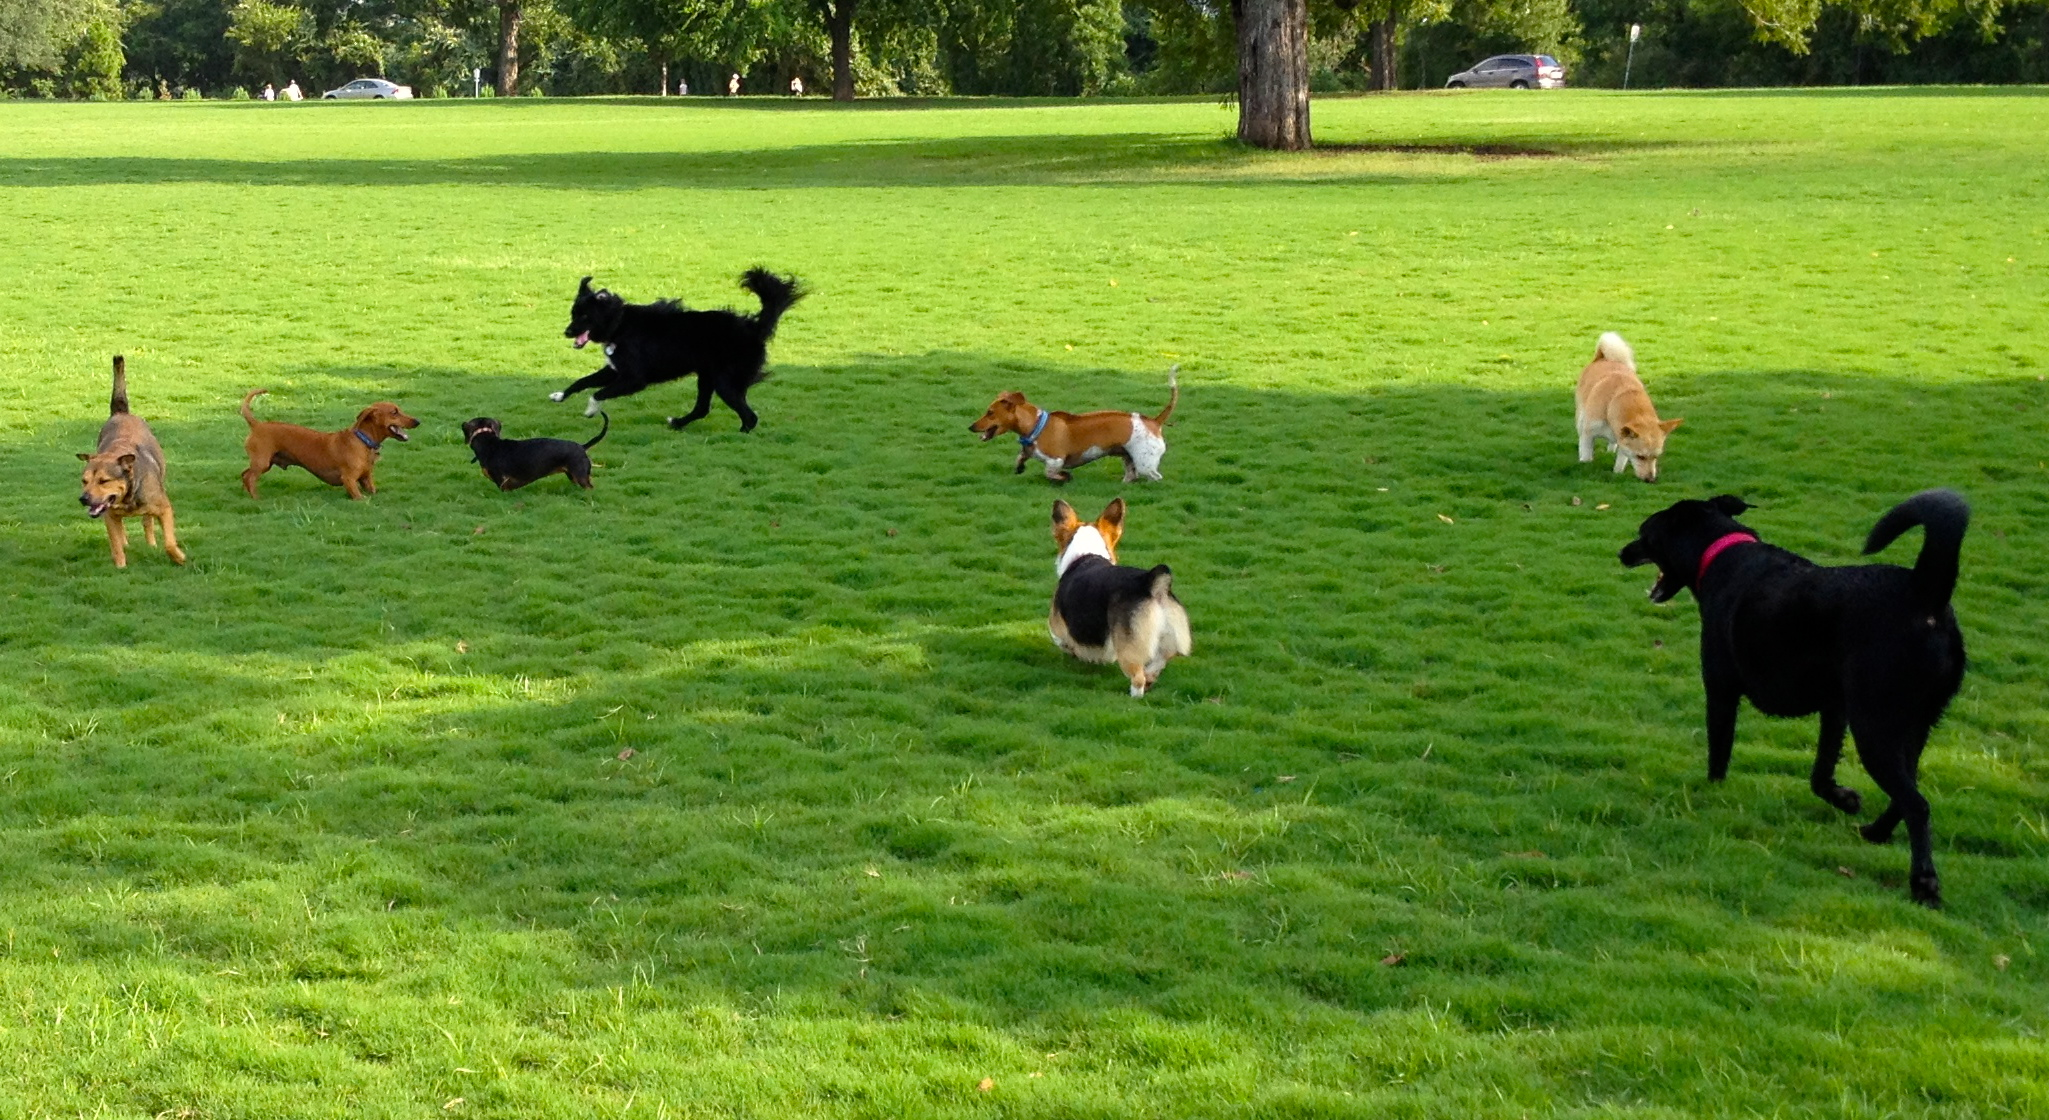 Multiple dogs off-leash in a park setting